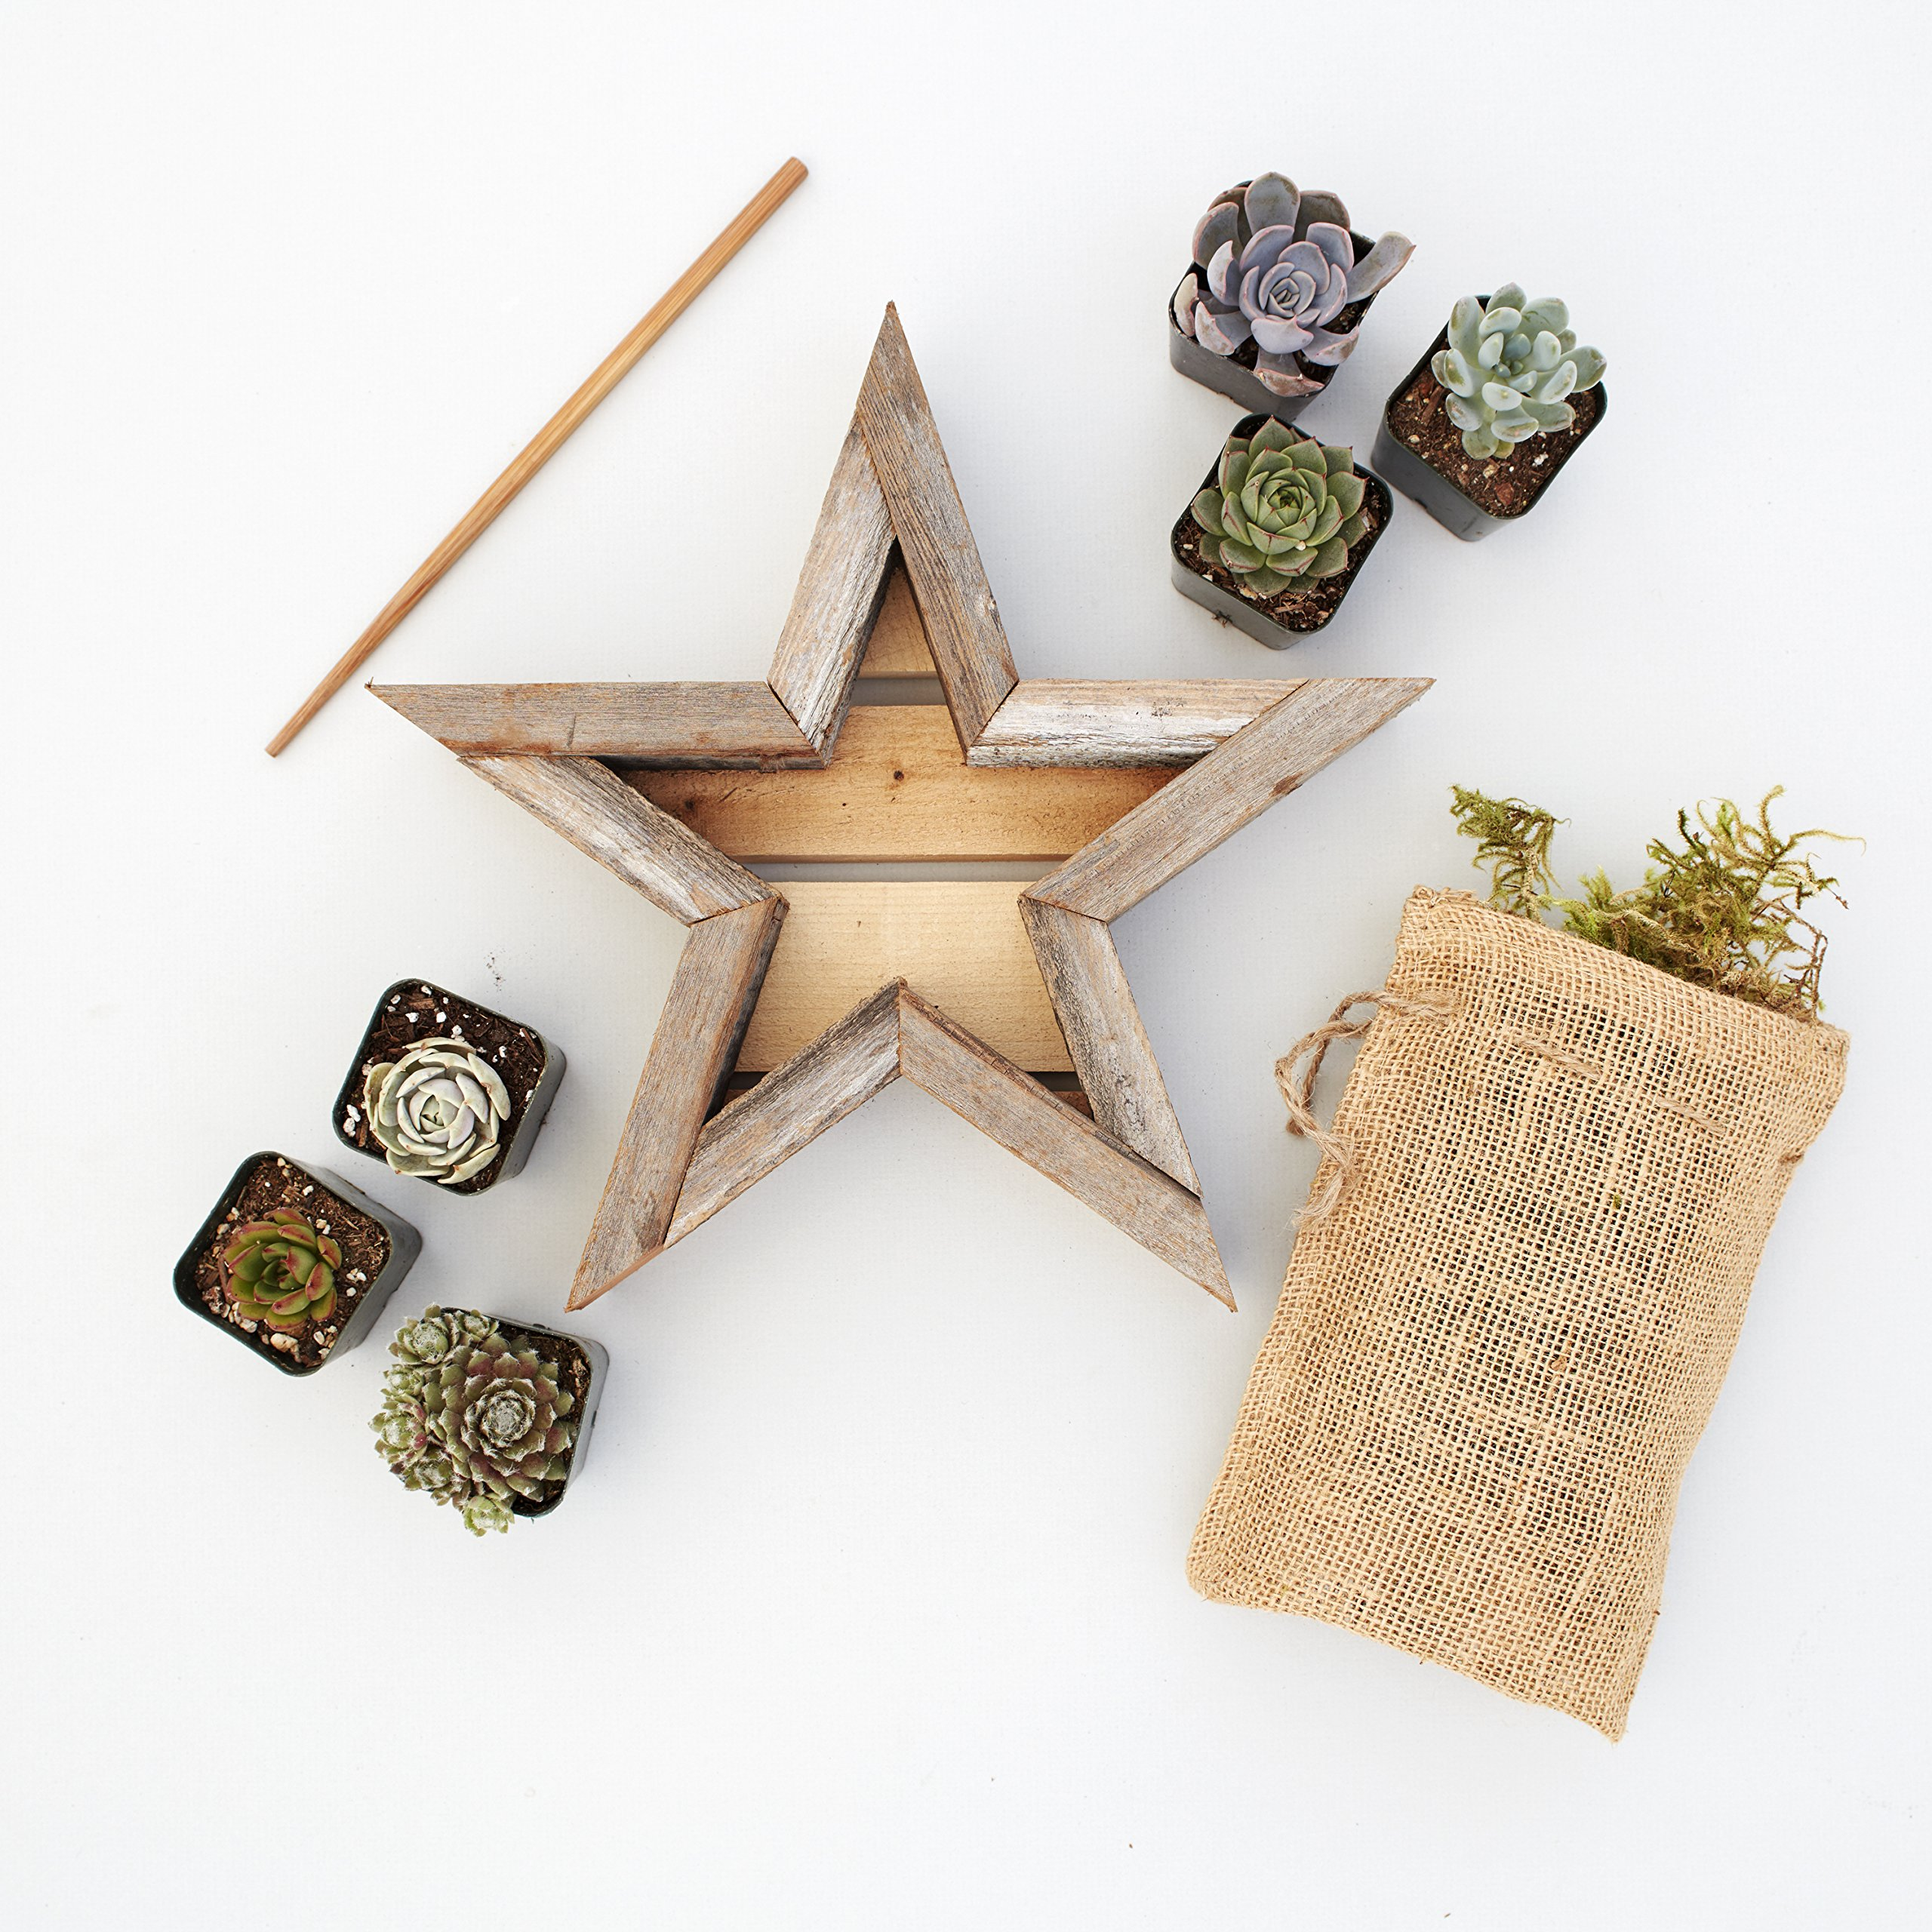 Succulent Gardens Small Succulent Star Planter Kit, 7'' Redwood Frame, Multicolor